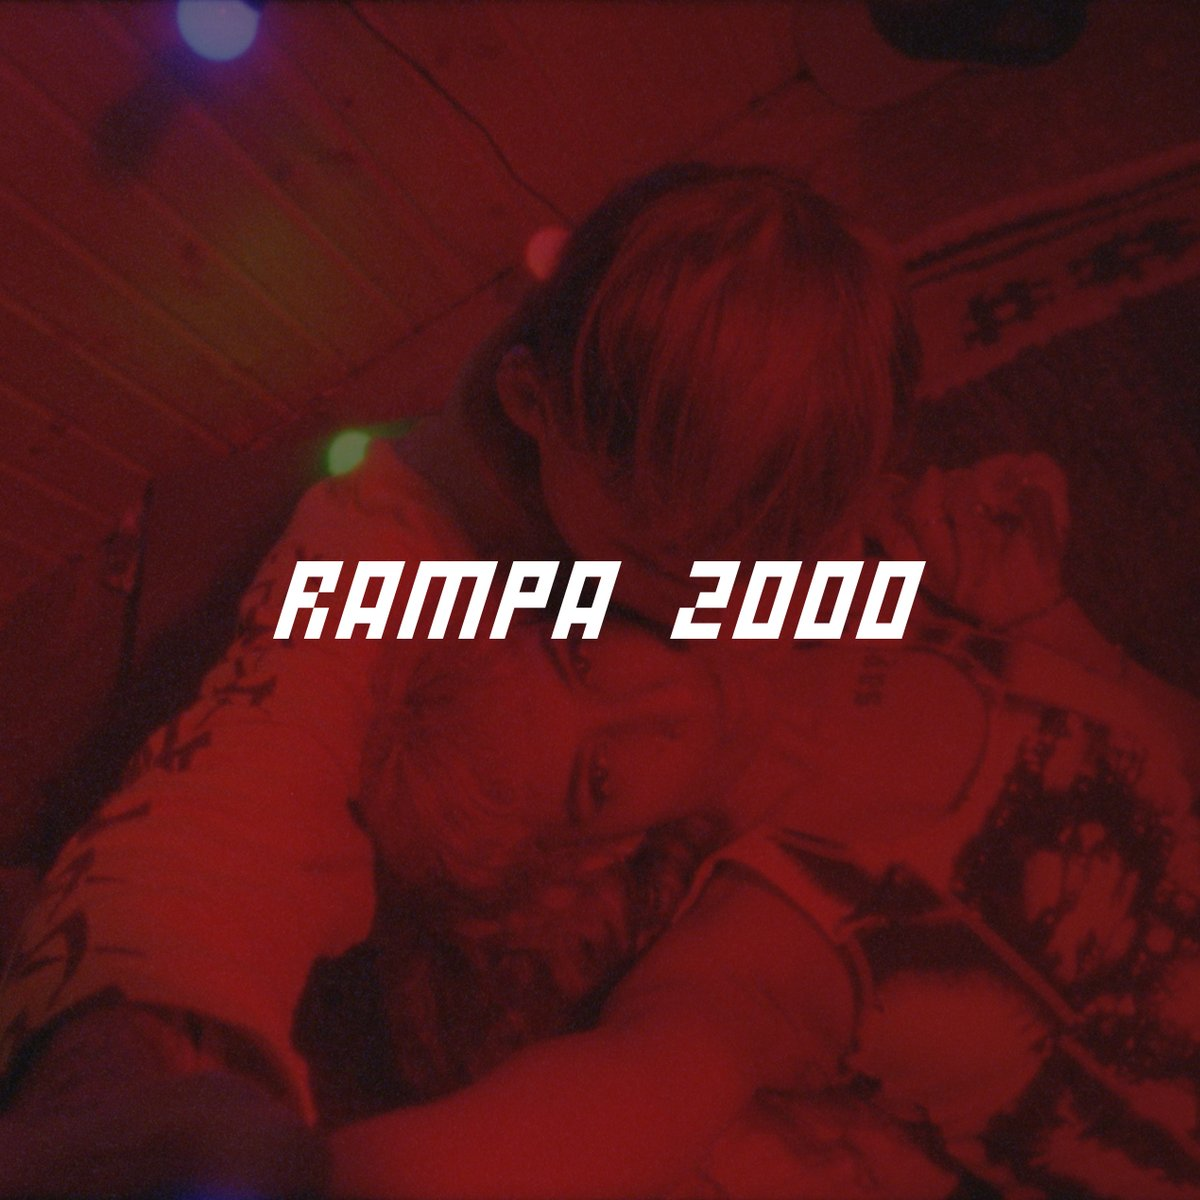 Rampa 2000 x Cocoon Video Monday 22nd special Video Premier on YouTube! See you online at 07:00 CET. 😉 Premier Video Link: youtube.com/watch?v=Bm7xOz…